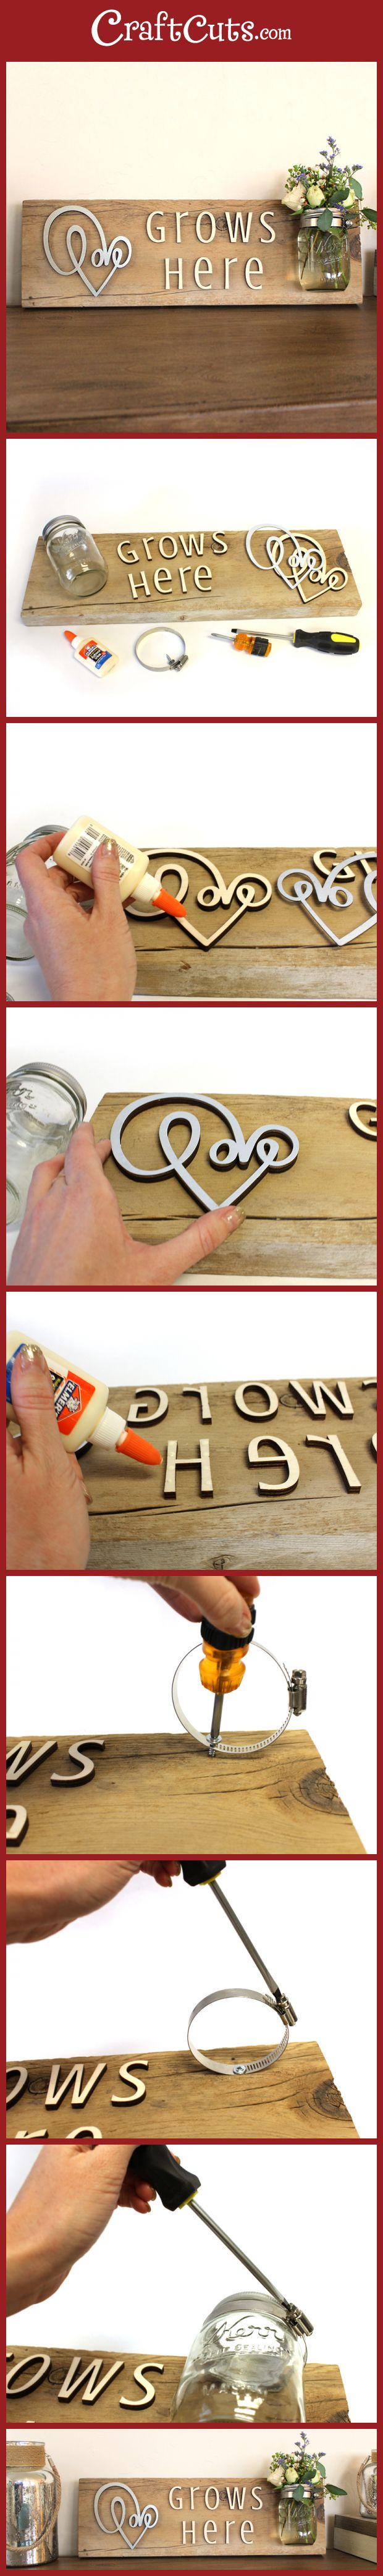 Reclaimed Wood Love Grows Sign and Vase | Mason Jar Vase | CraftCuts.com